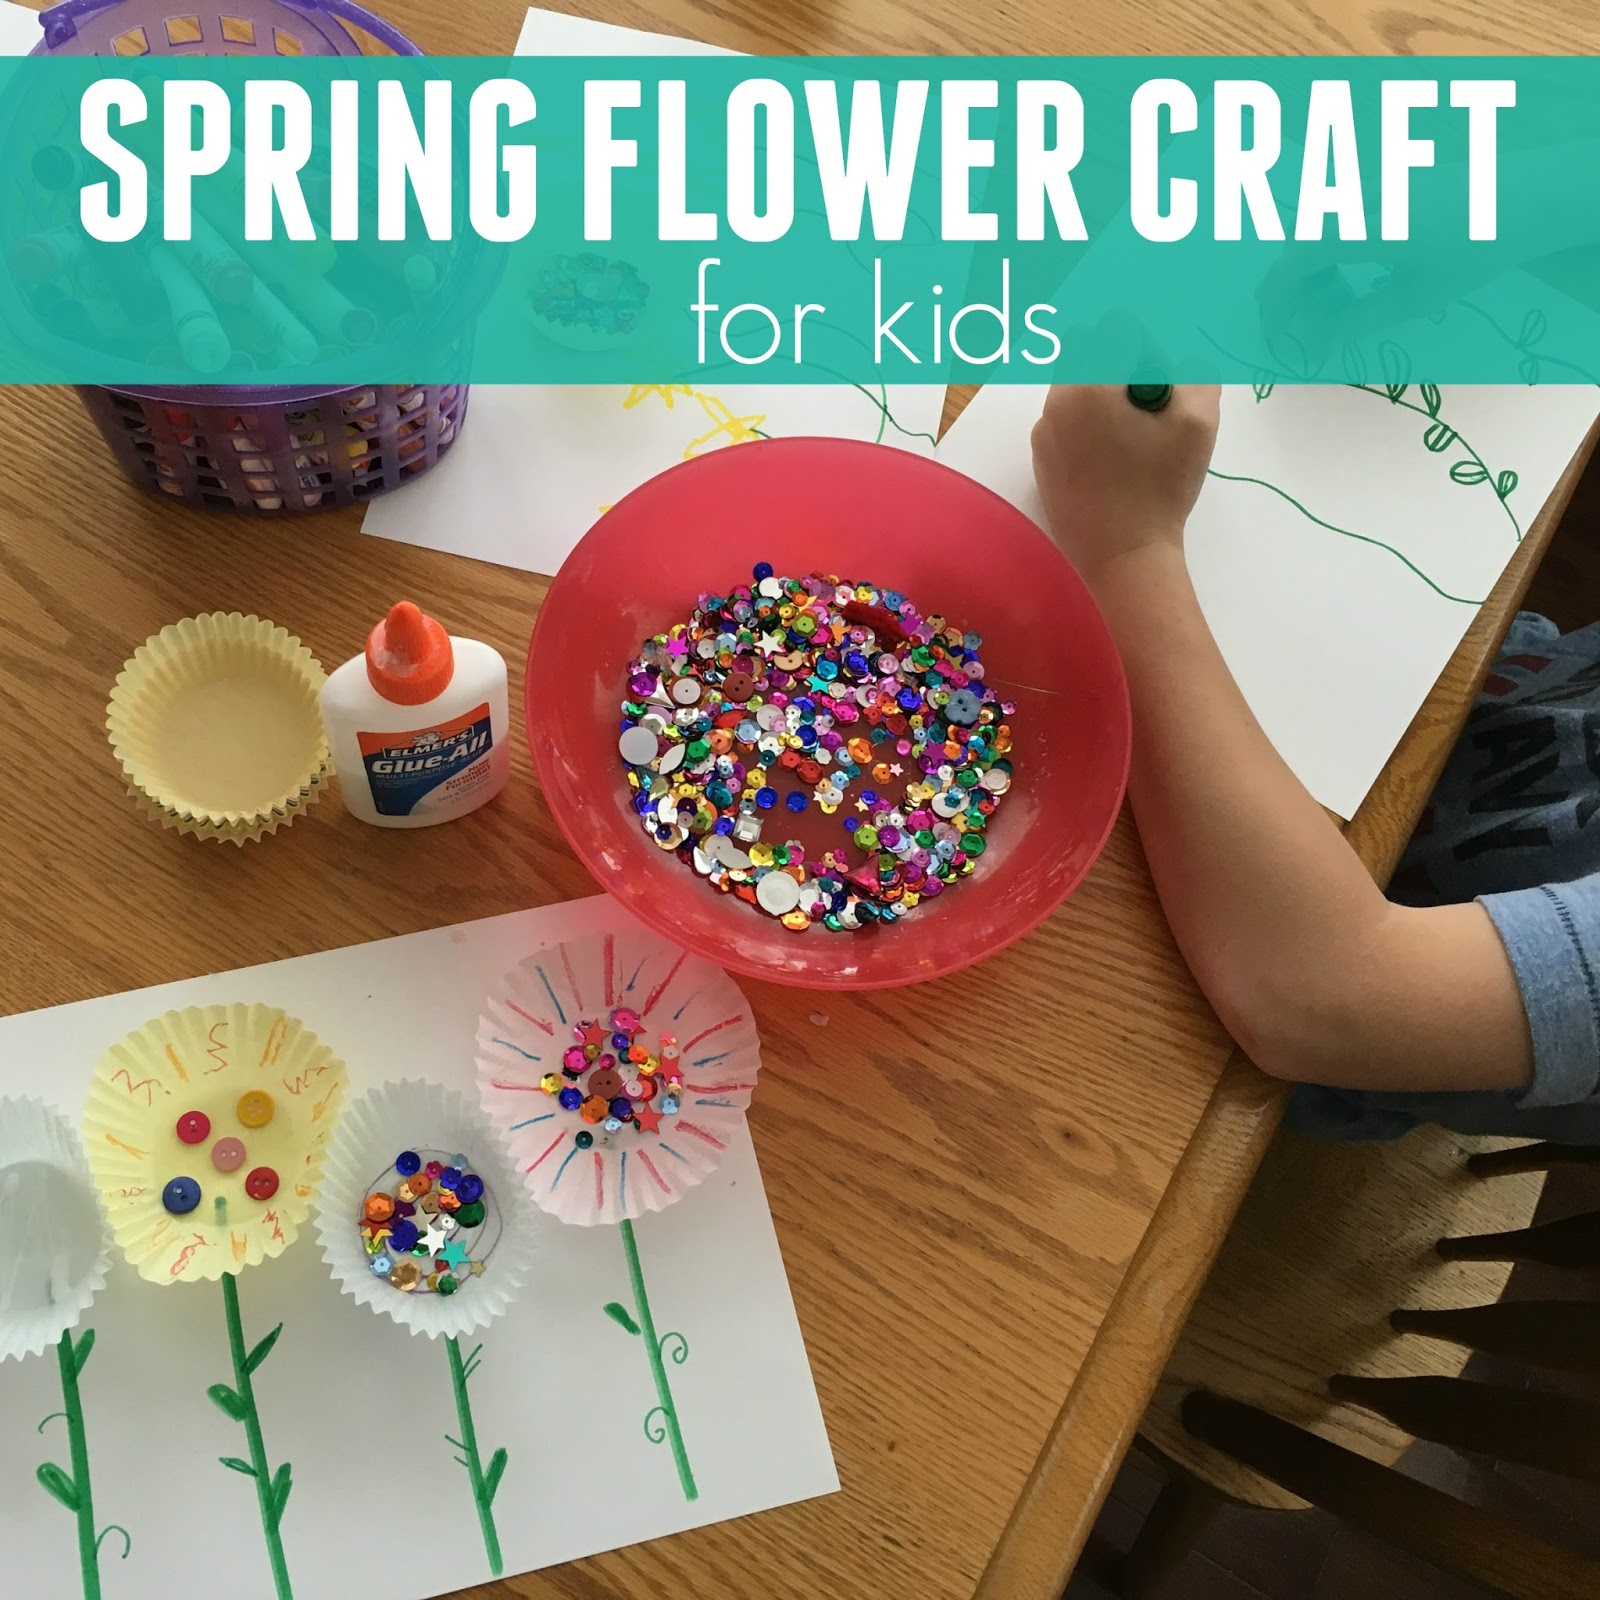 Toddler approved simple spring flower craft last year we made these pretty spring flowers as part of our spring party for preschoolers this year im living day to day with the arrival of baby 4 so mightylinksfo